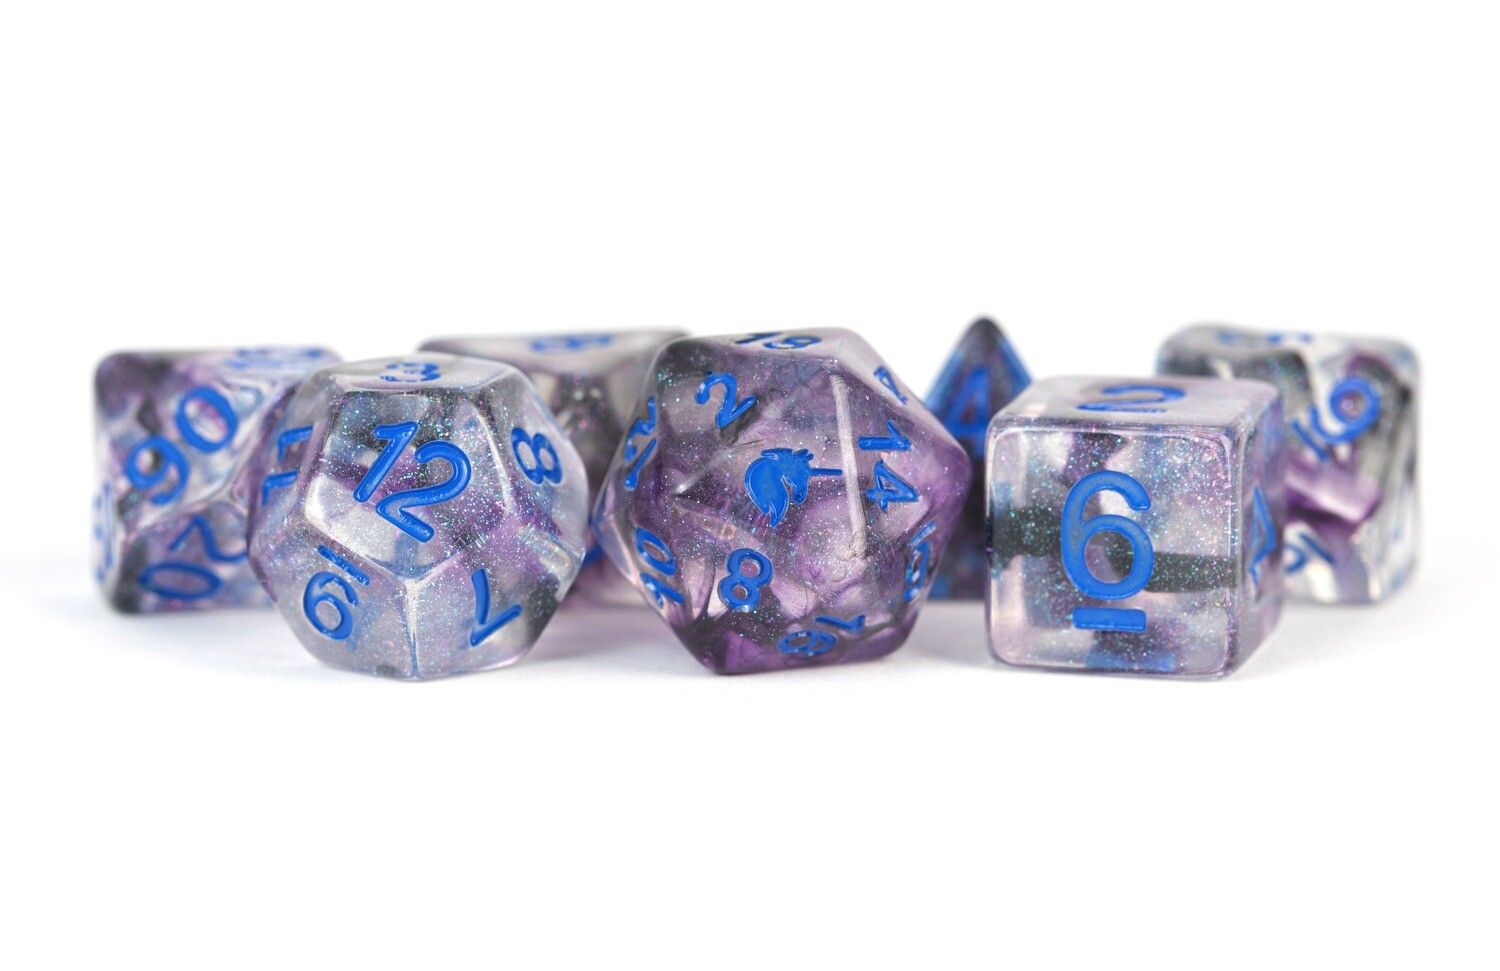 Unicorn Stellar Storm 6mm Poly Dice Set Tabletop RPG Gameing Roleplay